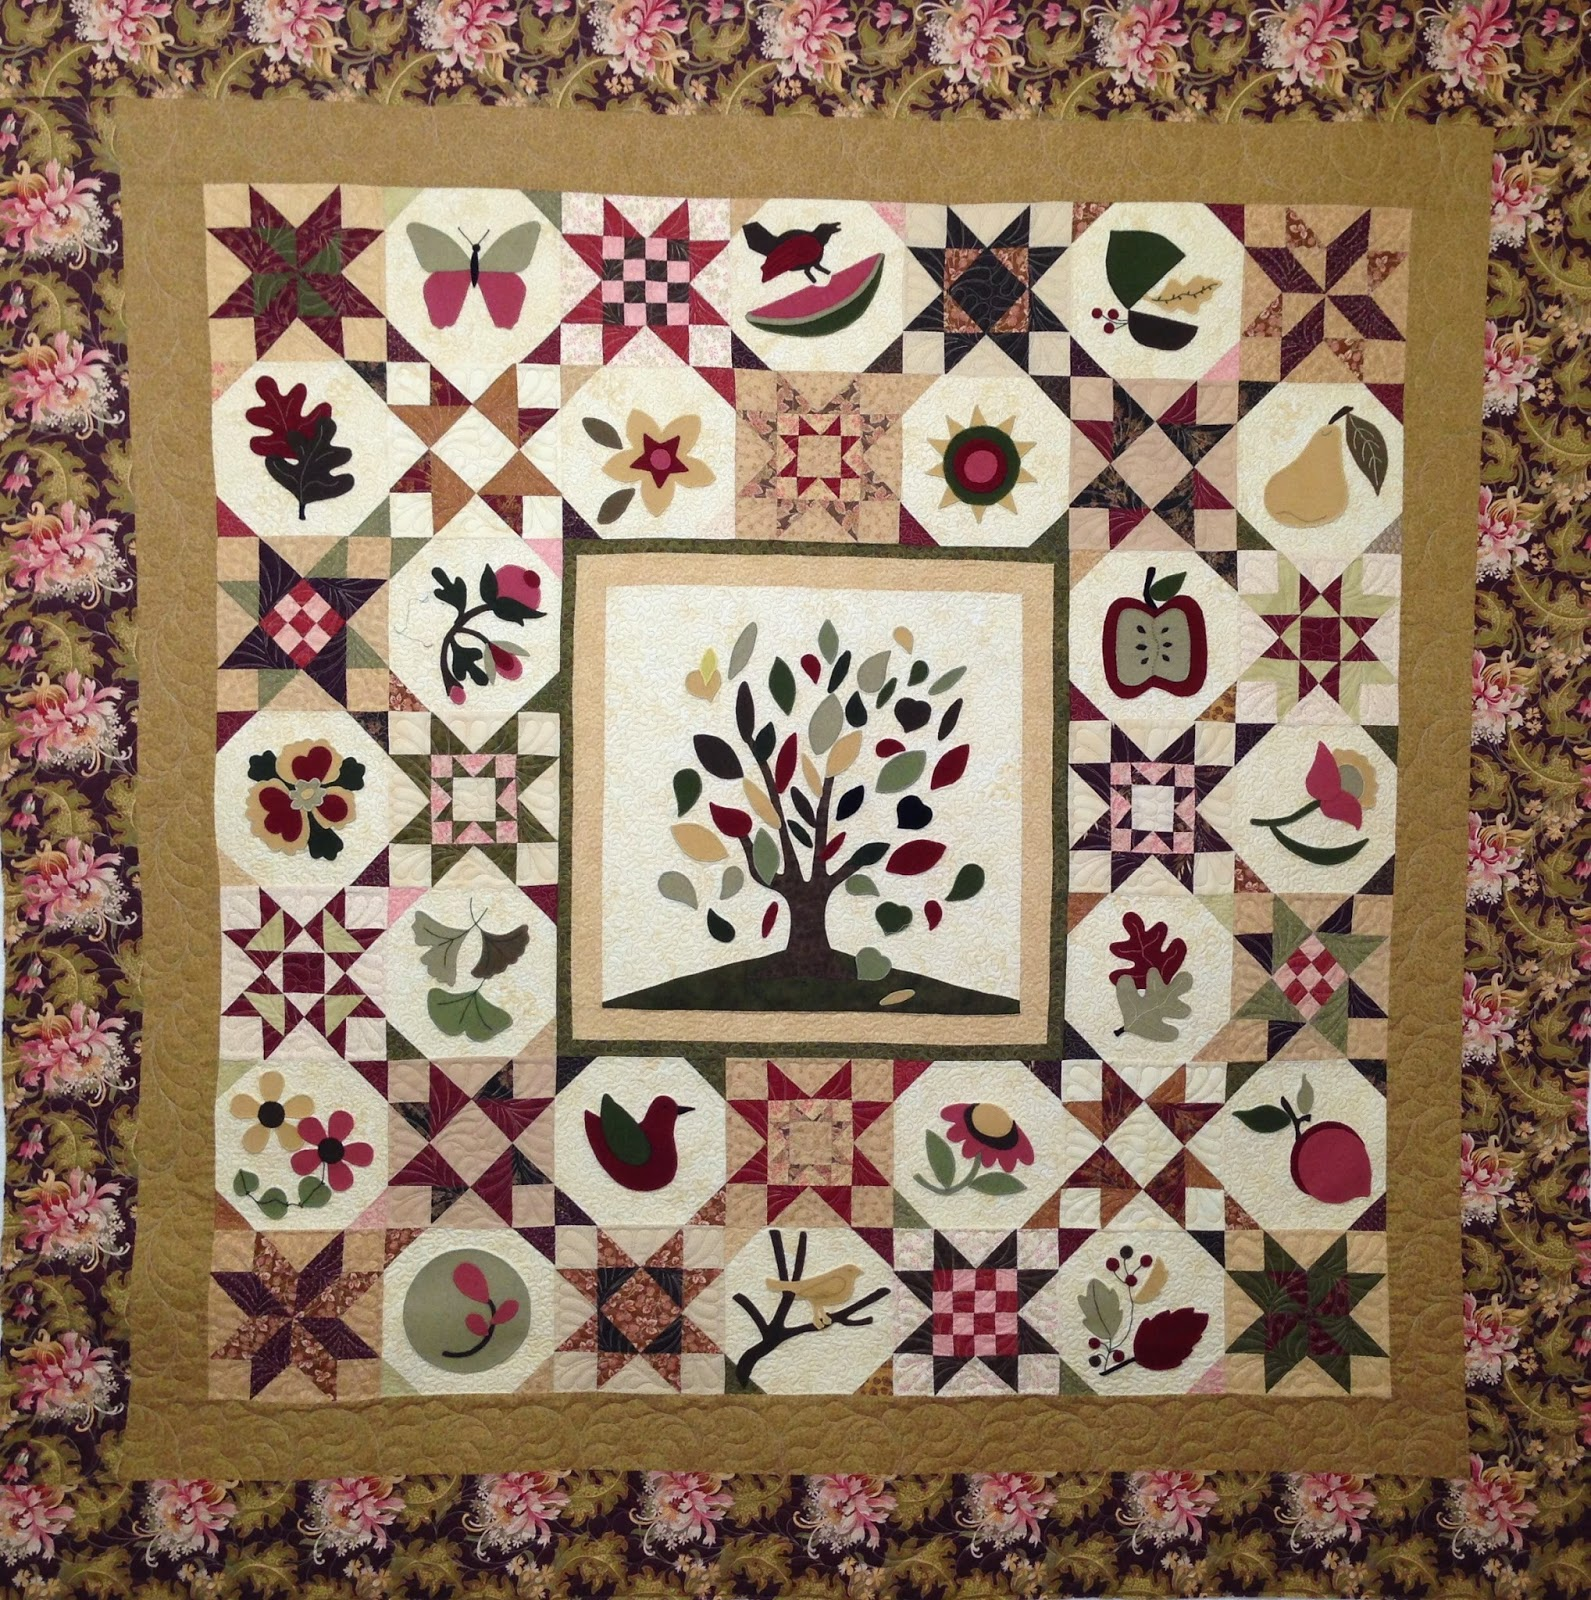 Laura Waclawczyk Wool Sampler quilt